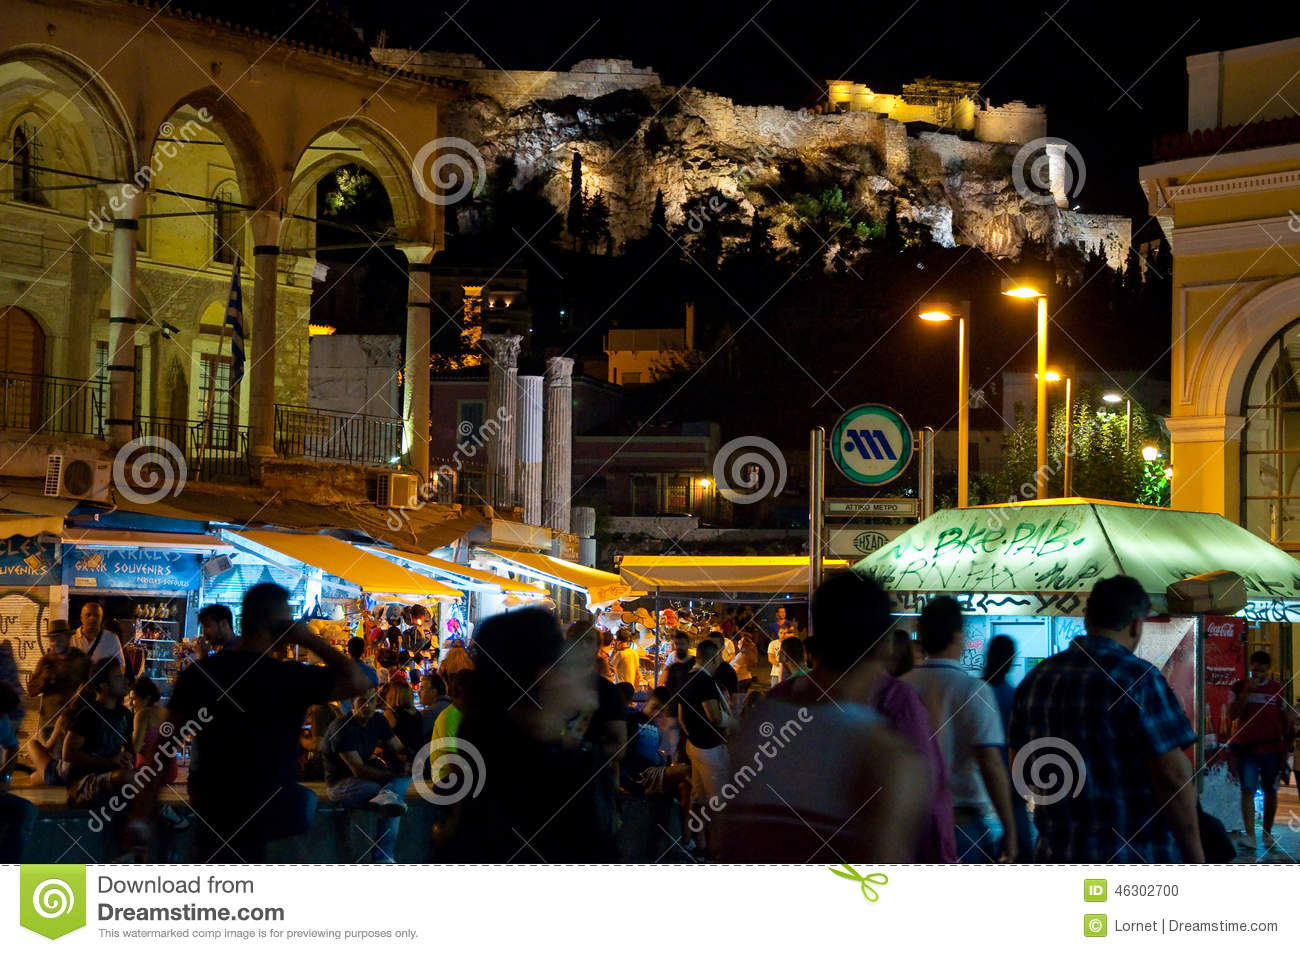 ATHENS-AUGUST 22: Nightlife on Monastiraki Square with Acropolis of Athens on the background on August 22, 2014 in Athens